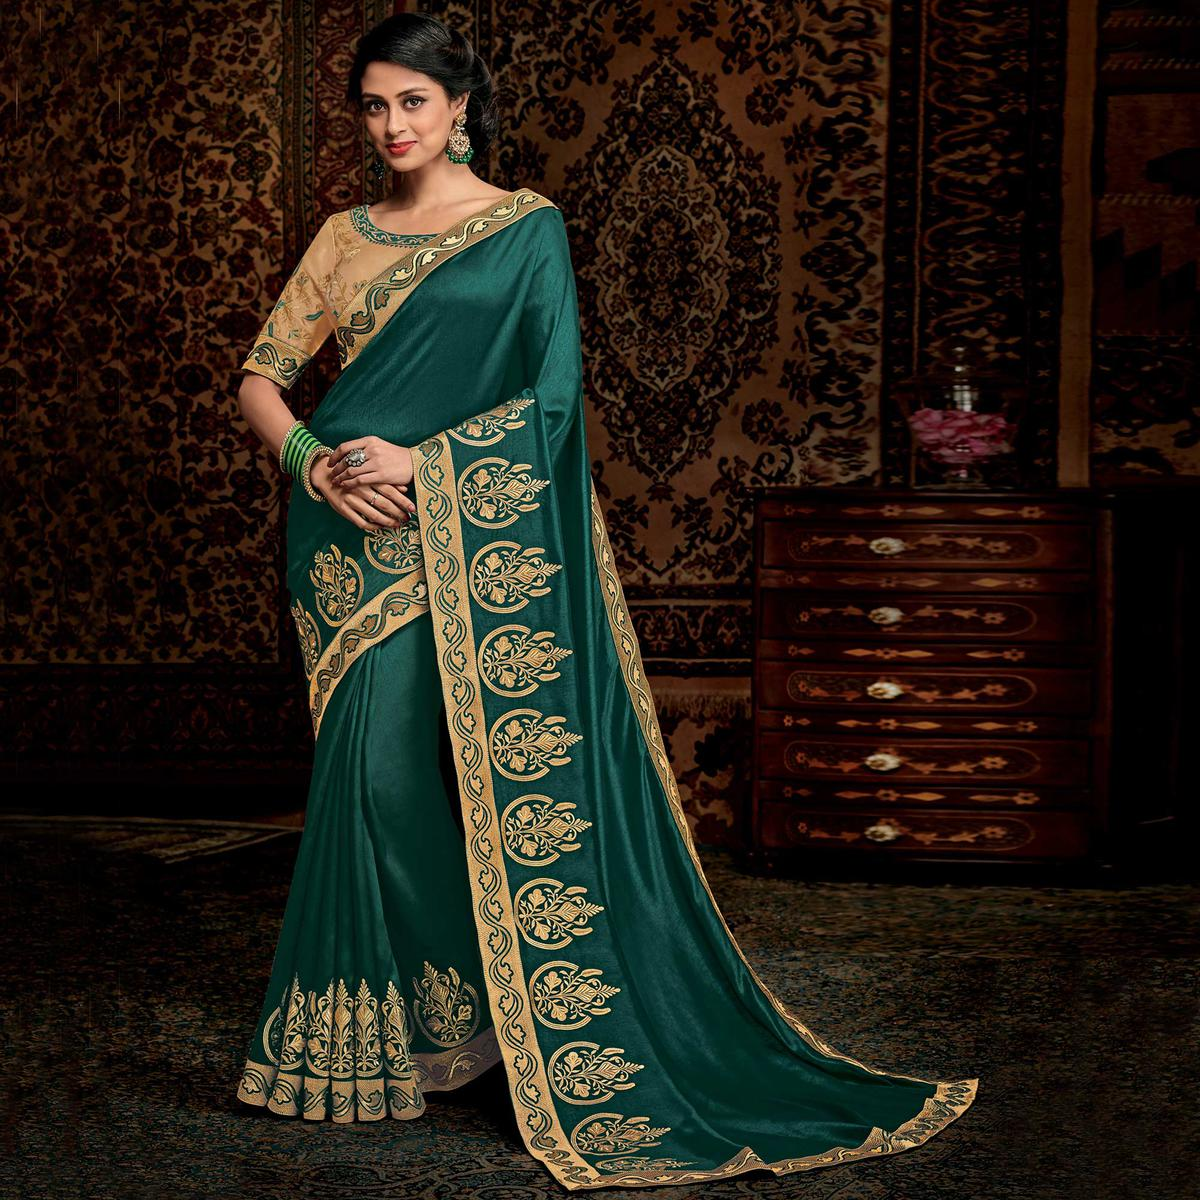 Unique Teal Green Colored Partwear Embroidered Silk Saree